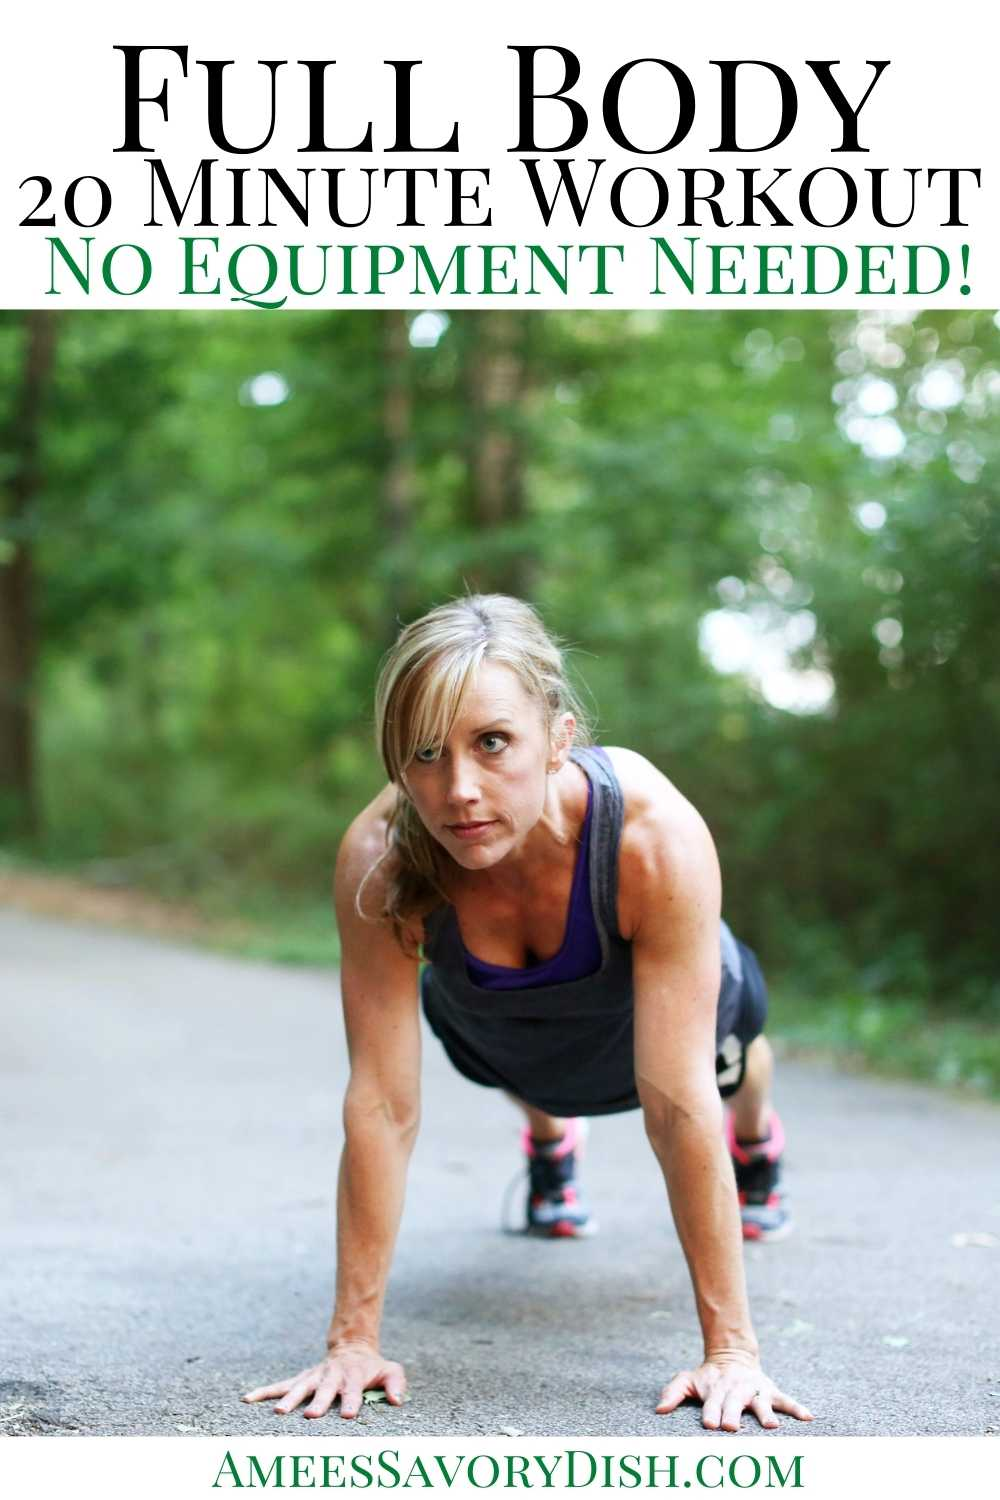 A challenging and fun 20-minute circuit workout that works the entire body. There is no equipment required, you're just using your body weight for resistance. #workoutideas #bodyweightworkout #workoutideas #noequipmentworkouts via @Ameessavorydish